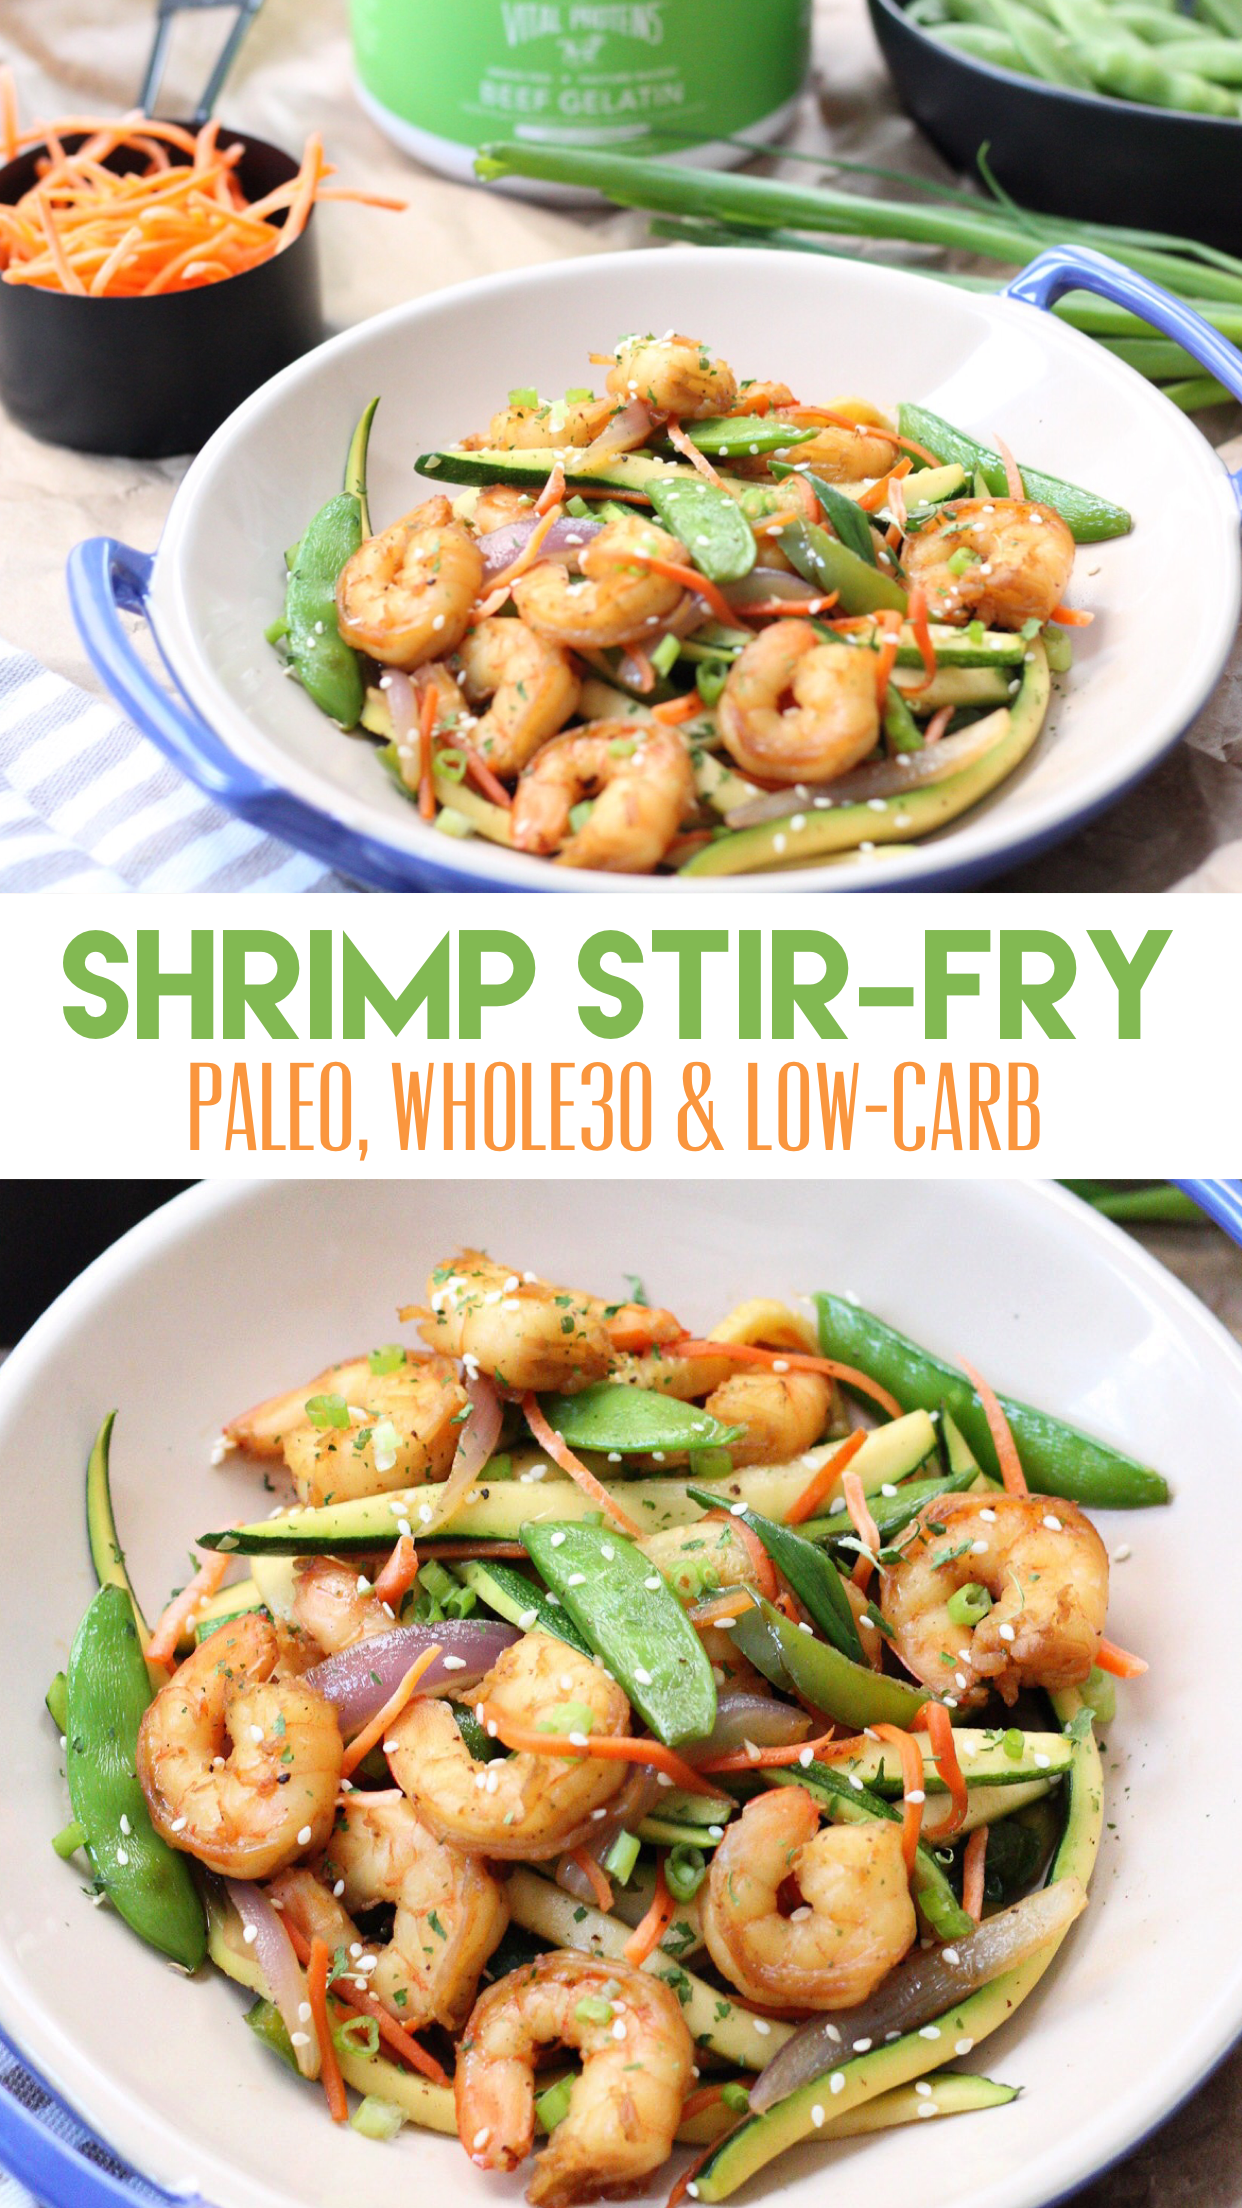 Paleo Shrimp Stir Fry: Whole30 & Low Carb + Tips for Cooking With Gelatin - Whole Kitchen Sink